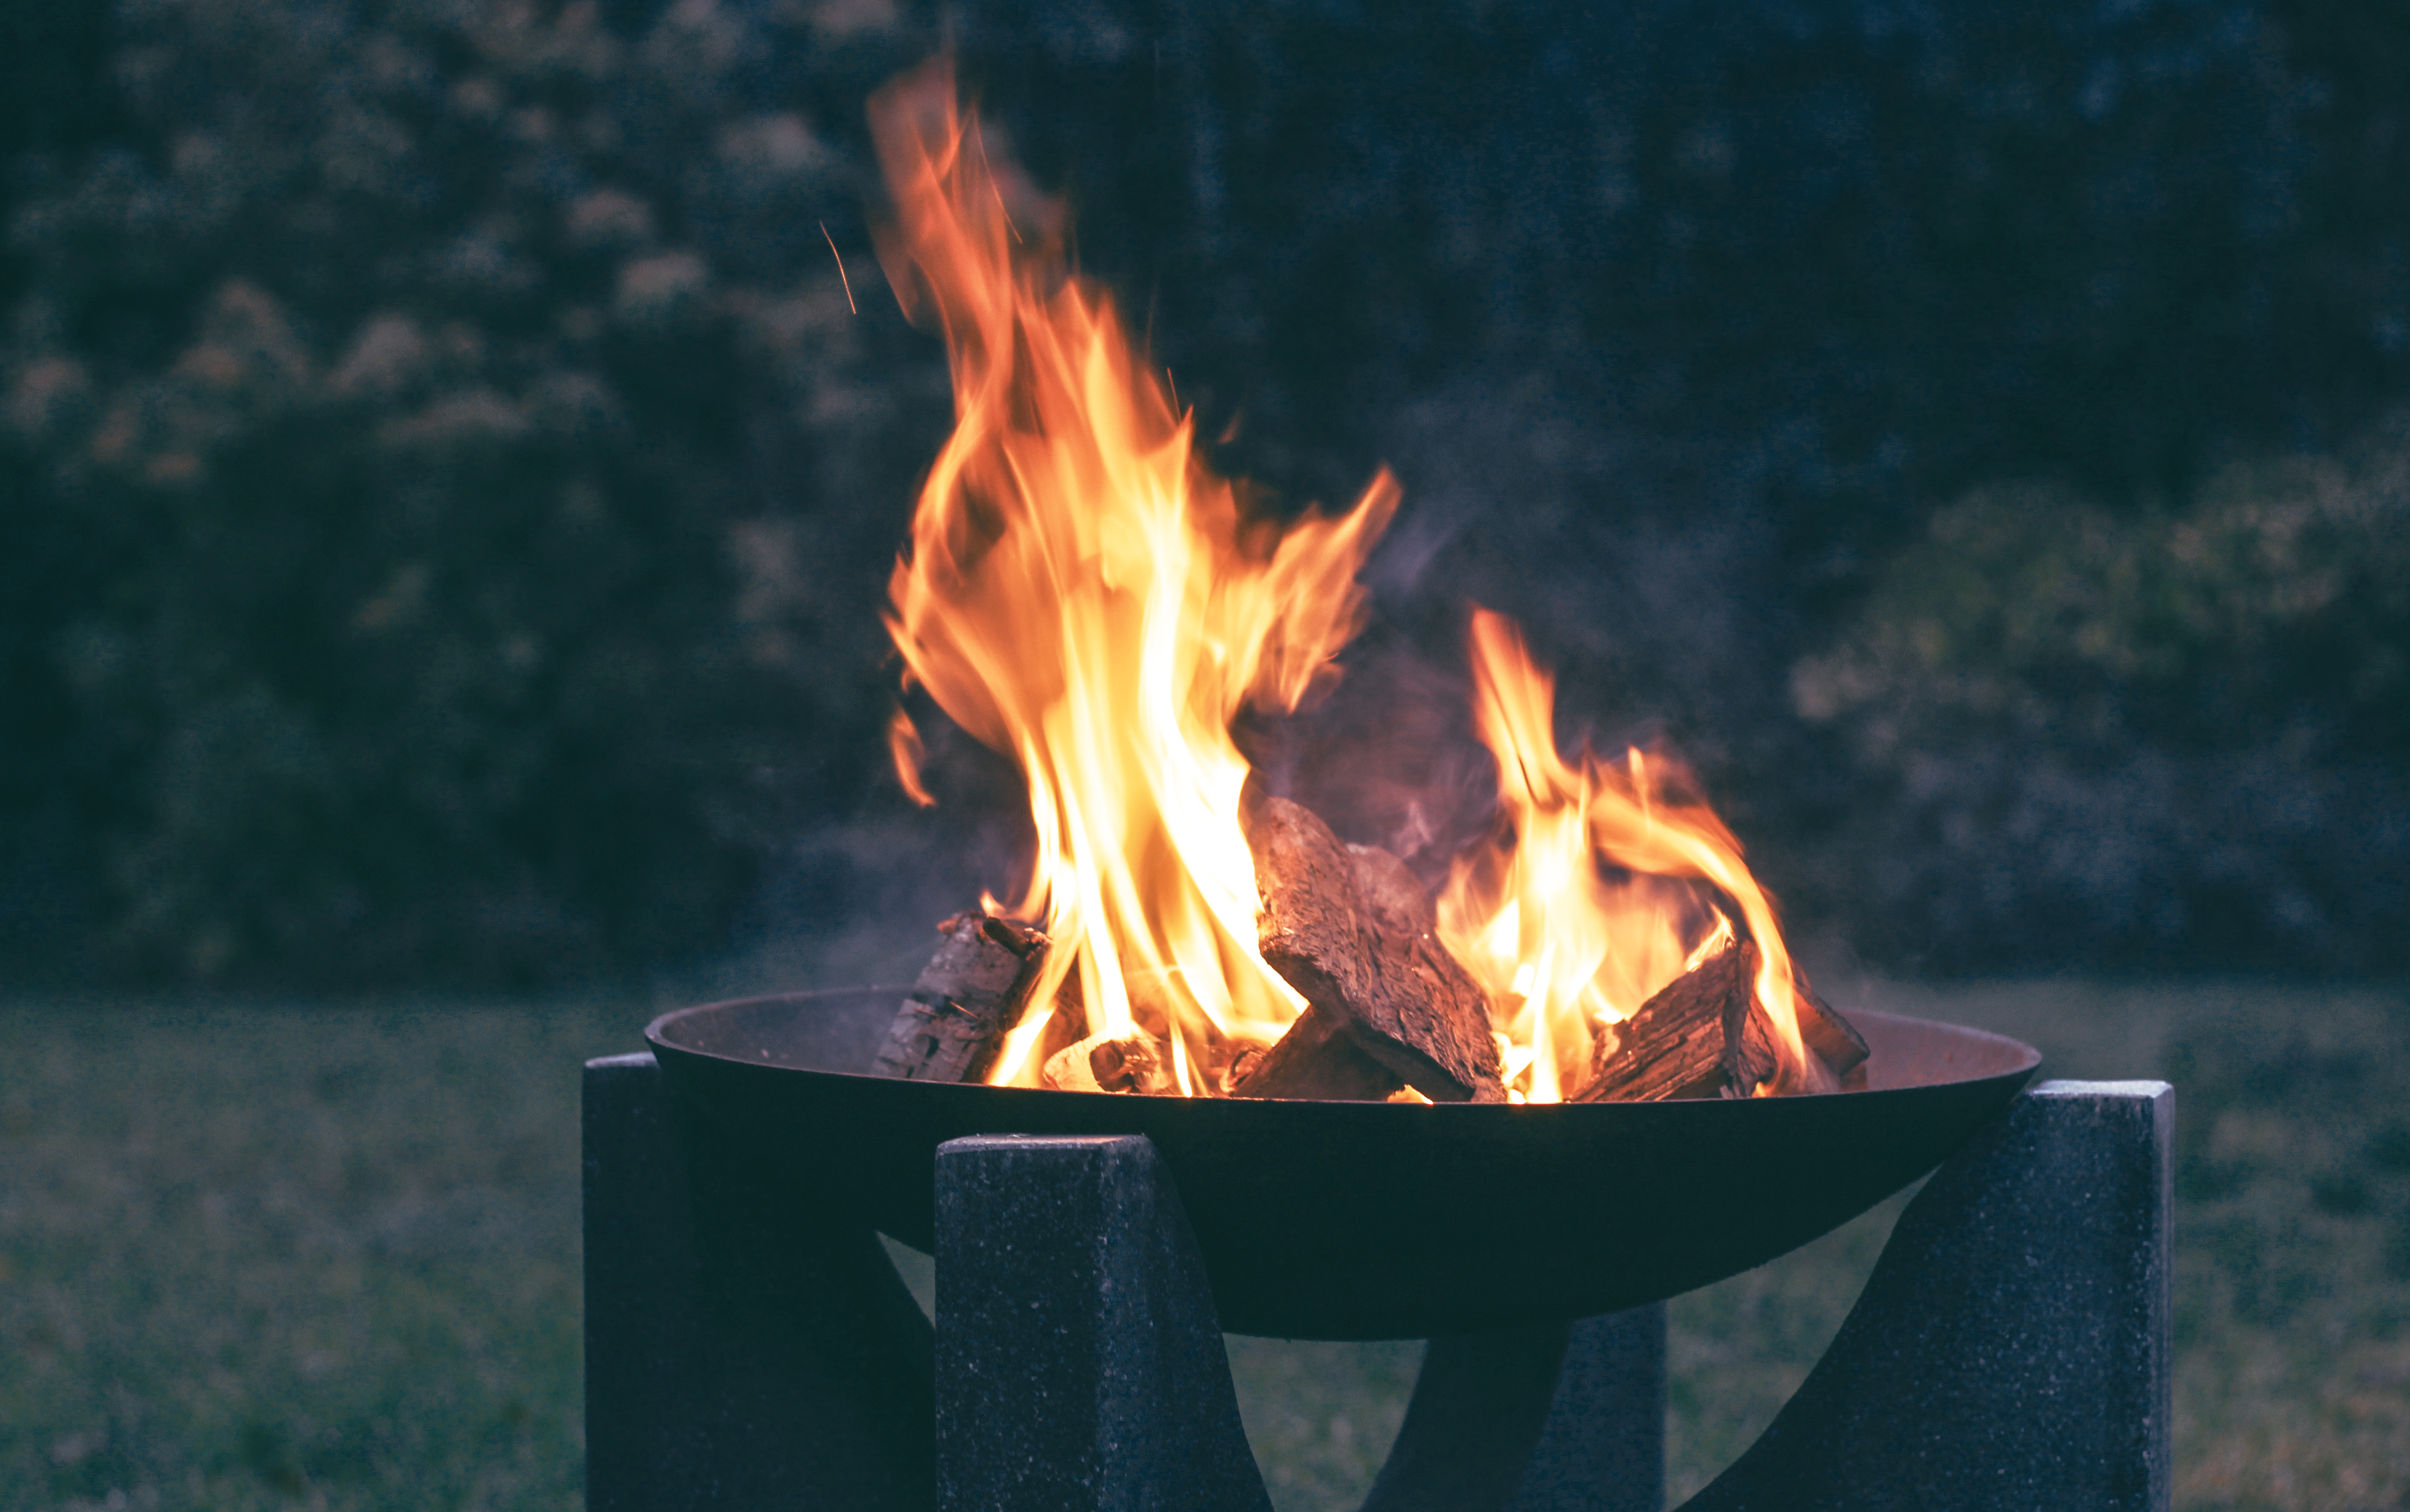 Canva - Photography of Wood Burning on Fire Pit